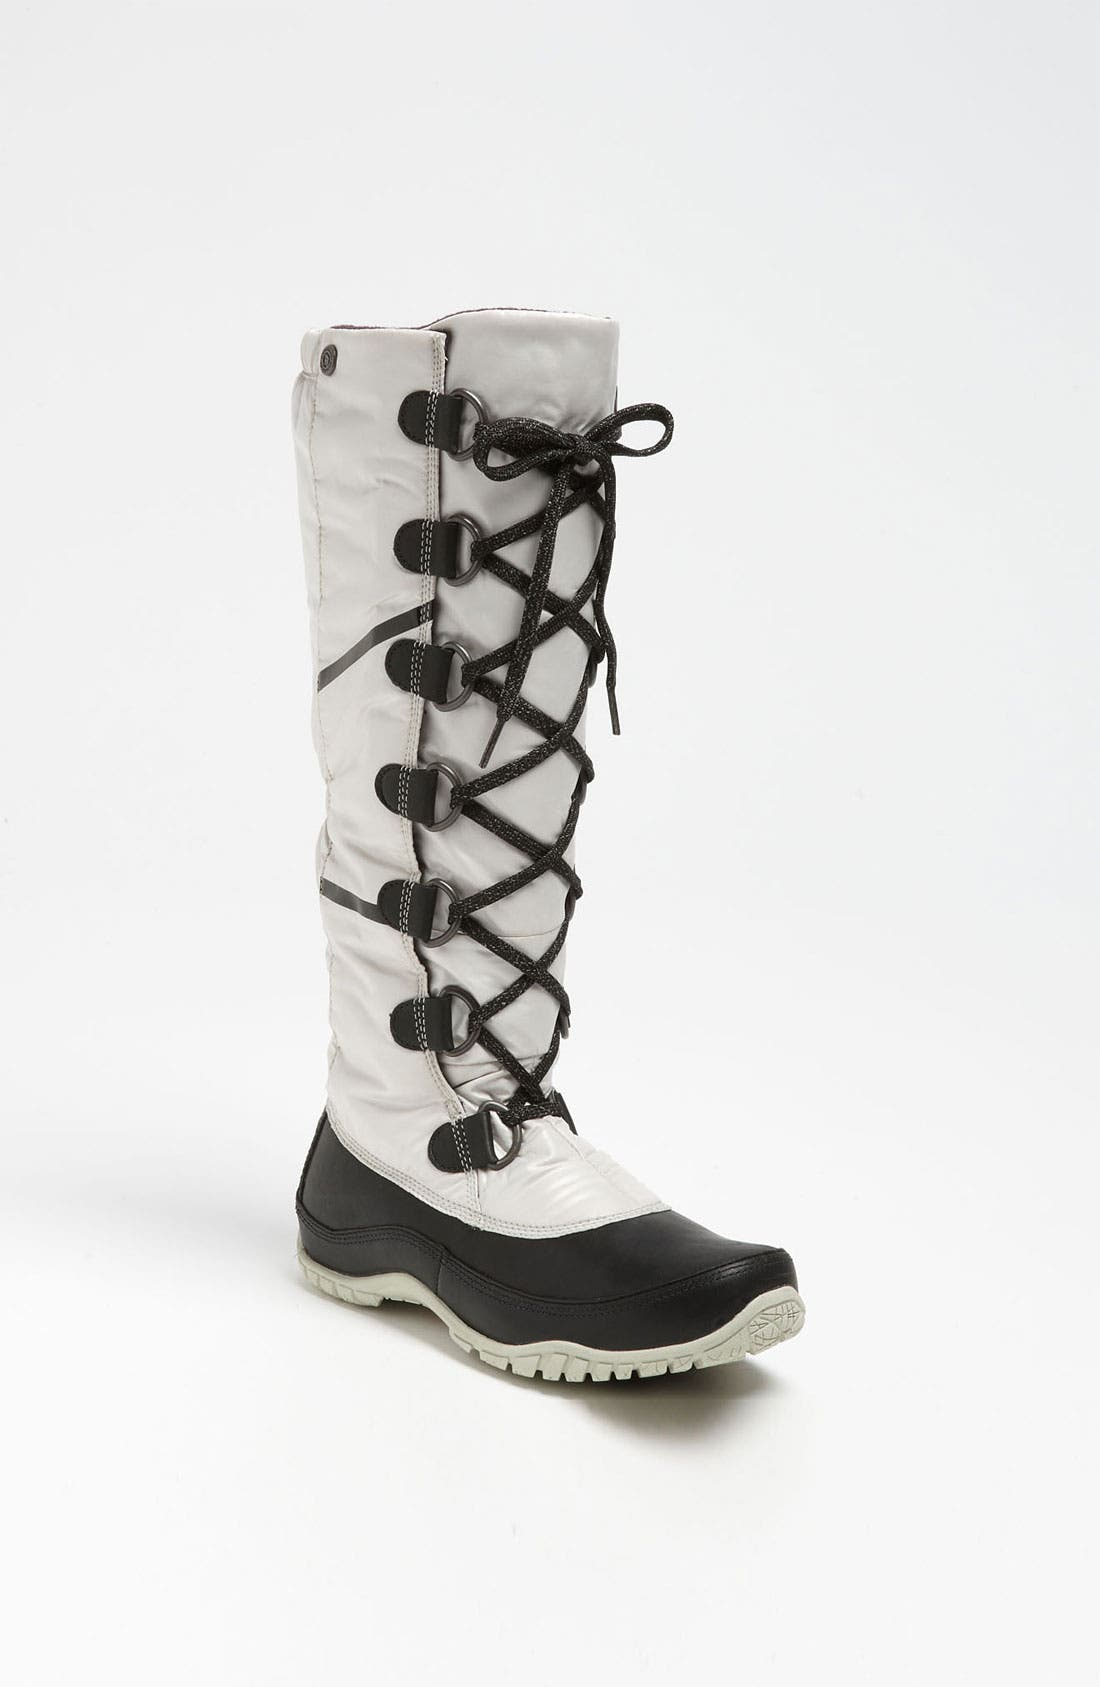 Main Image - The North Face 'Anna Purna' Boot